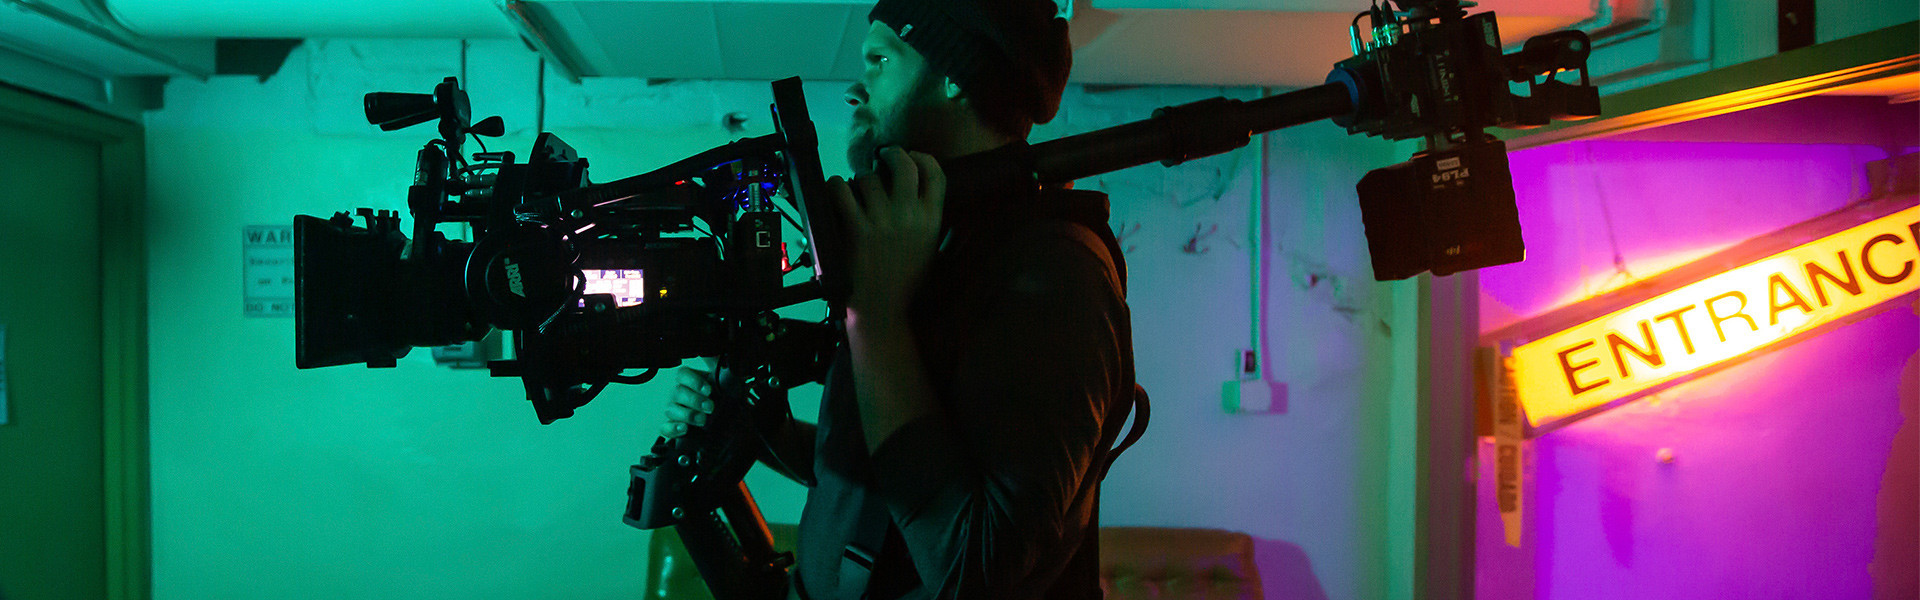 Header image for article Andrew Theiss Steps Up to the ARRI TRINITY Camera Stabilizer